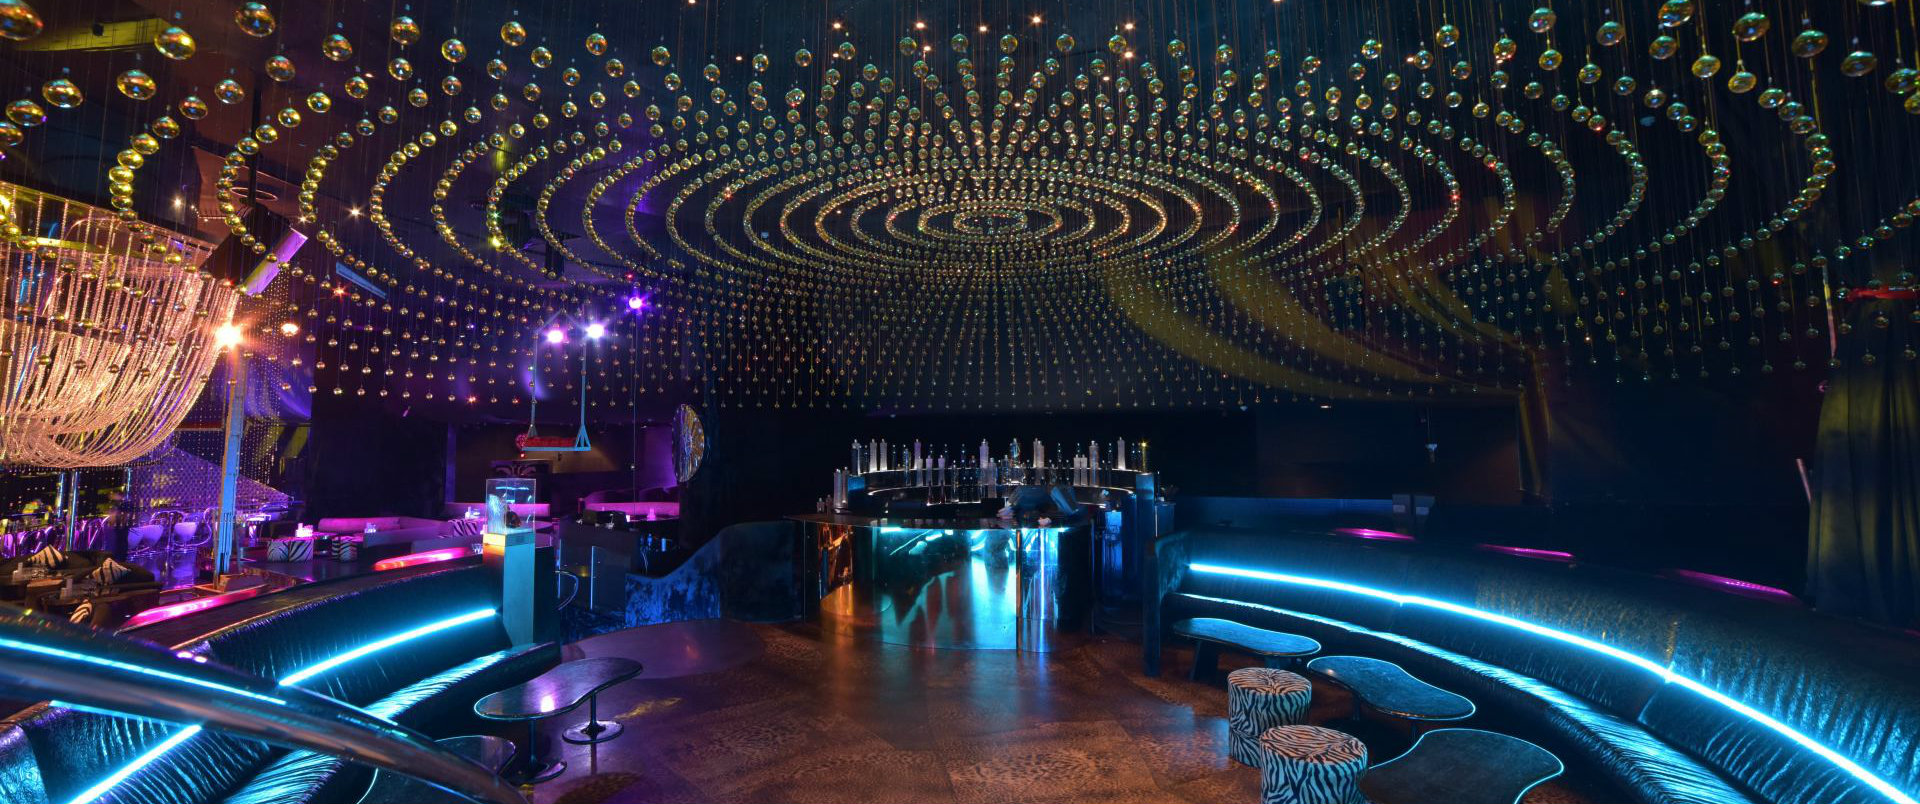 Night Club with Swarovski Crystals by Roberto Cavalli The most richest people The most richest people of 2016 cover3 The most richest people The most richest people of 2016 cover3